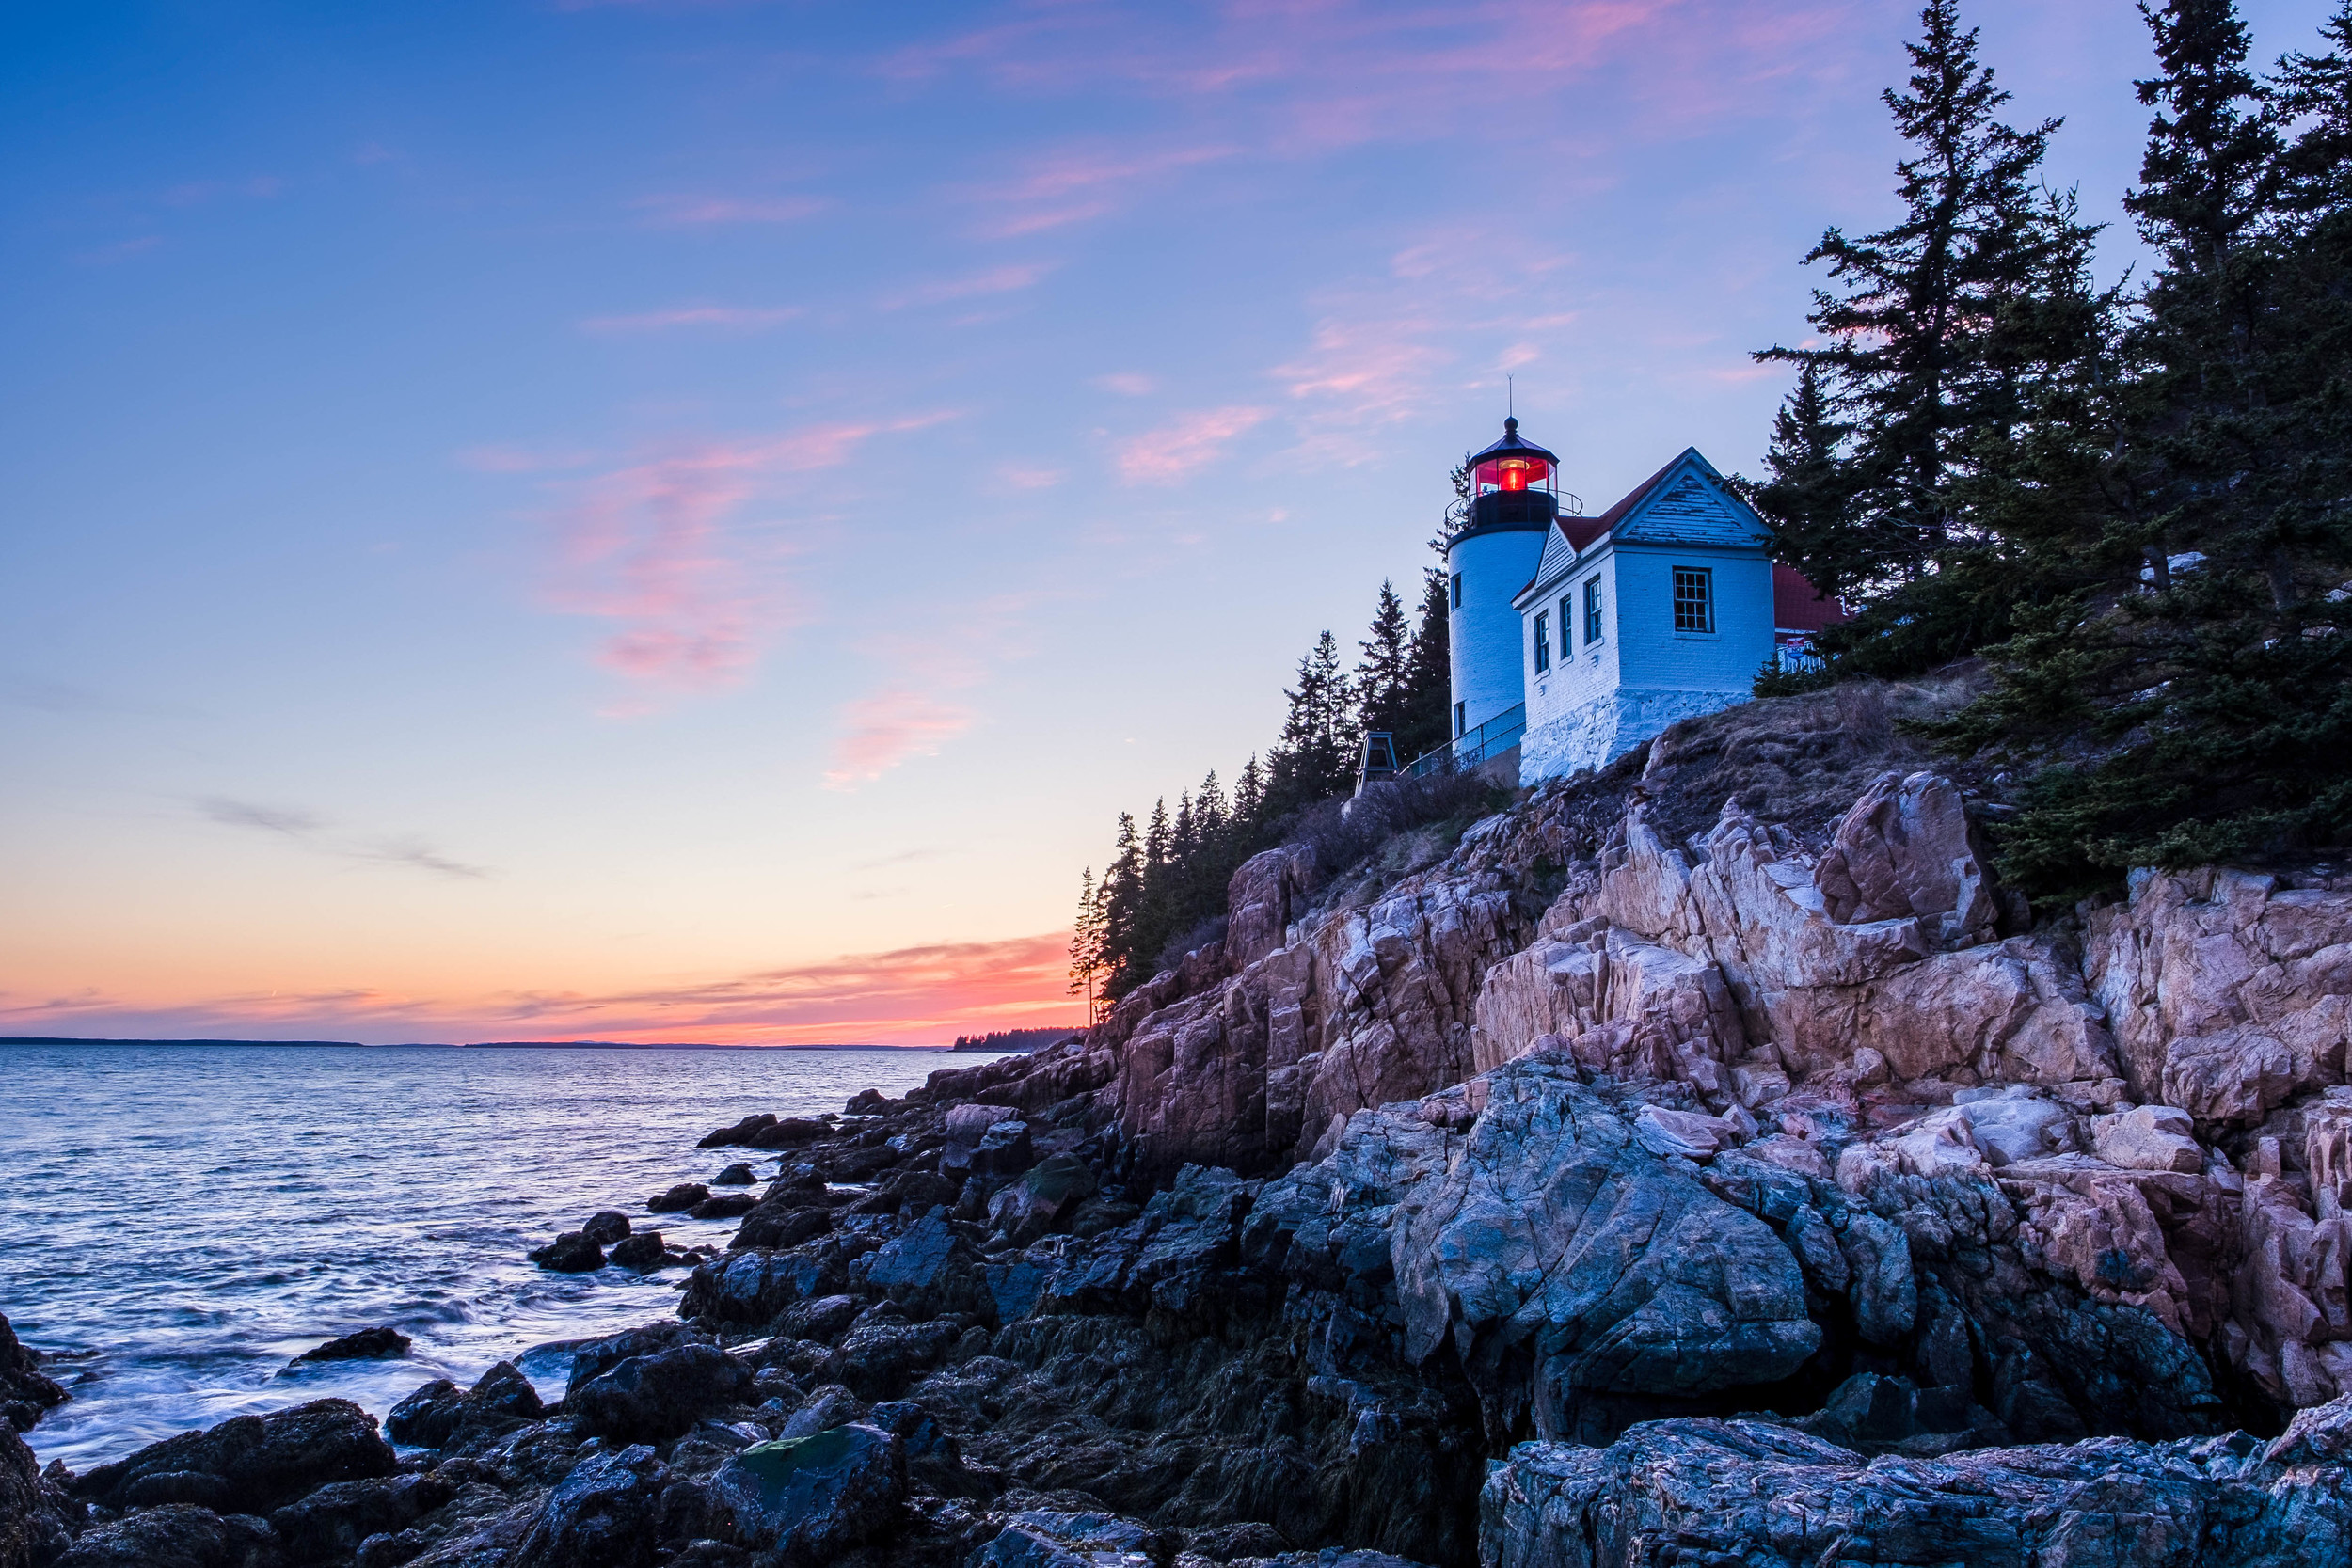 The iconic Bass Harbor Light House.